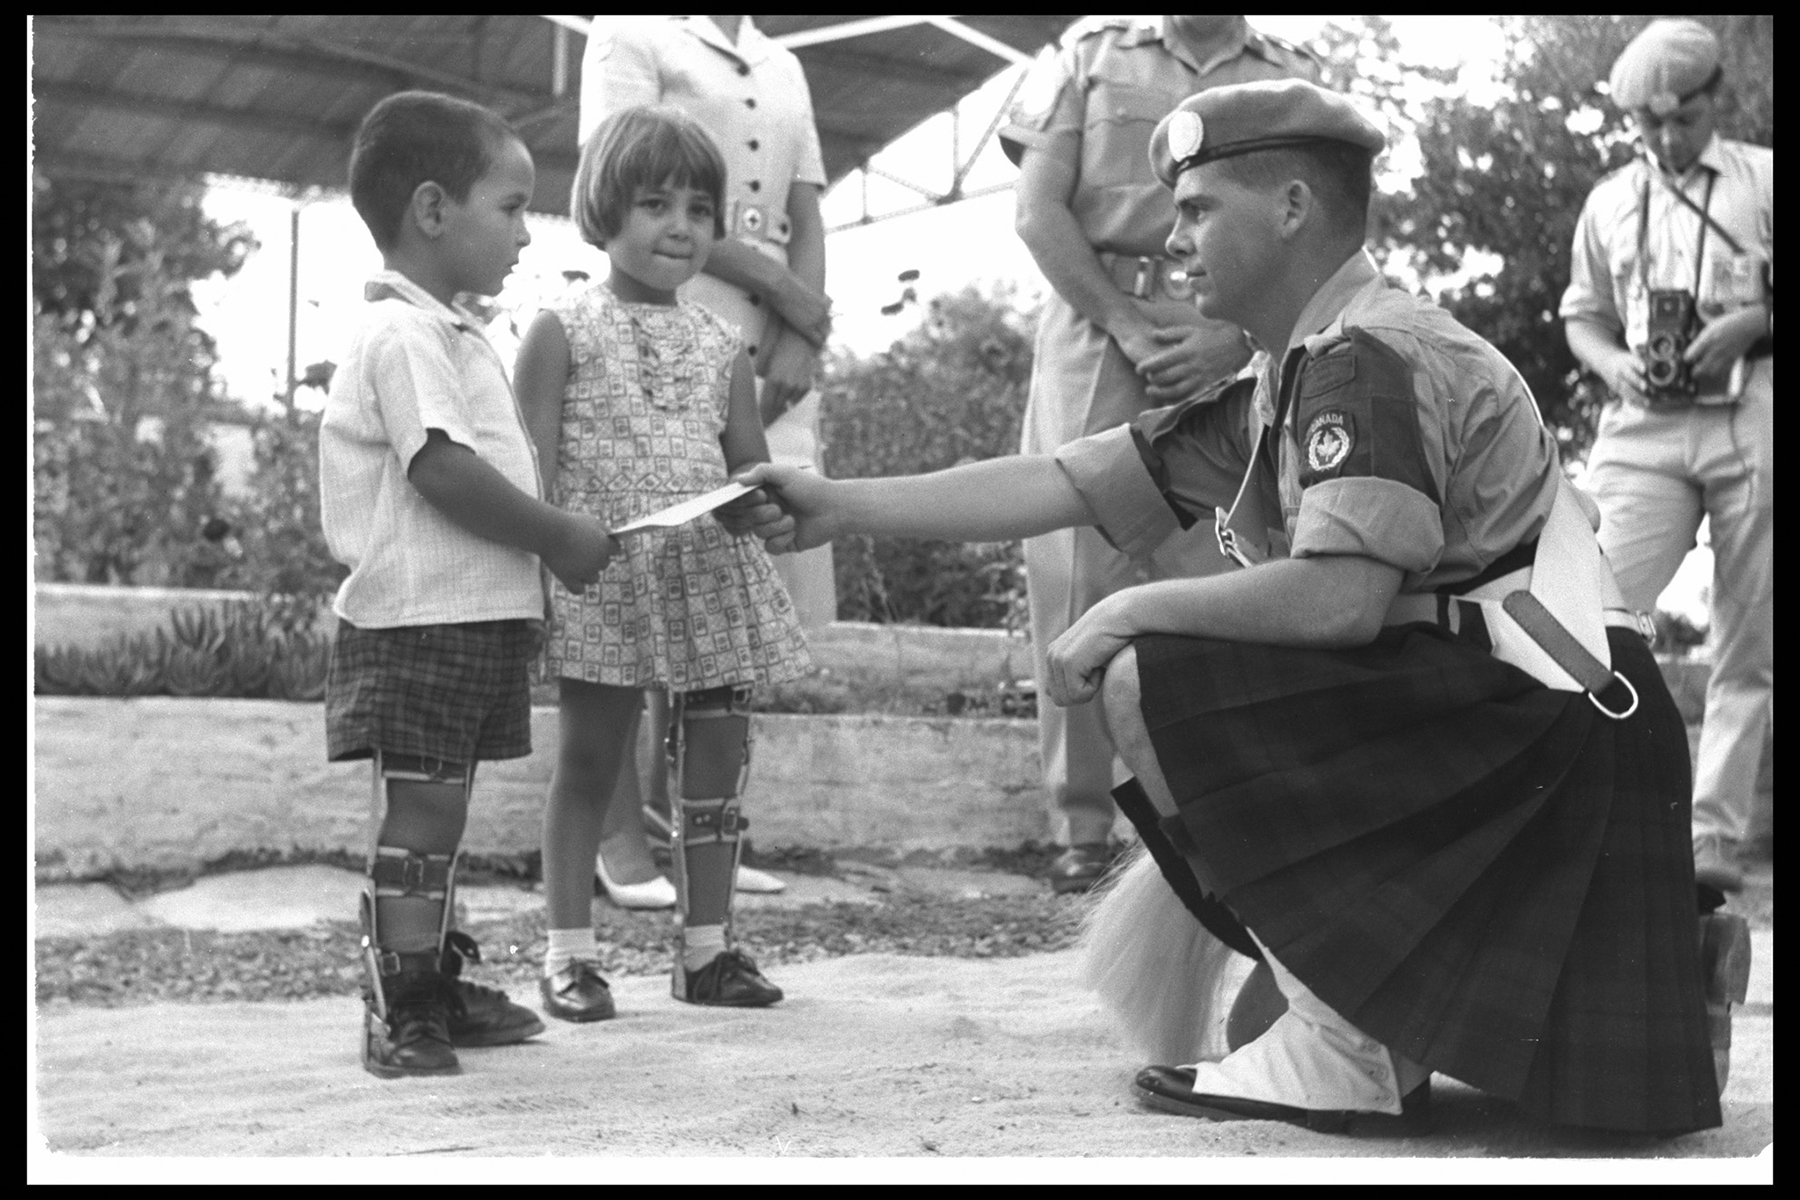 In late autumn 1966, Private J.M. McNeil presents a cheque for $1,500 to children at the Greekturk Cypriot Kyrenia Sick Childrens Hospital in Cyprus. PHOTO: DND Archives